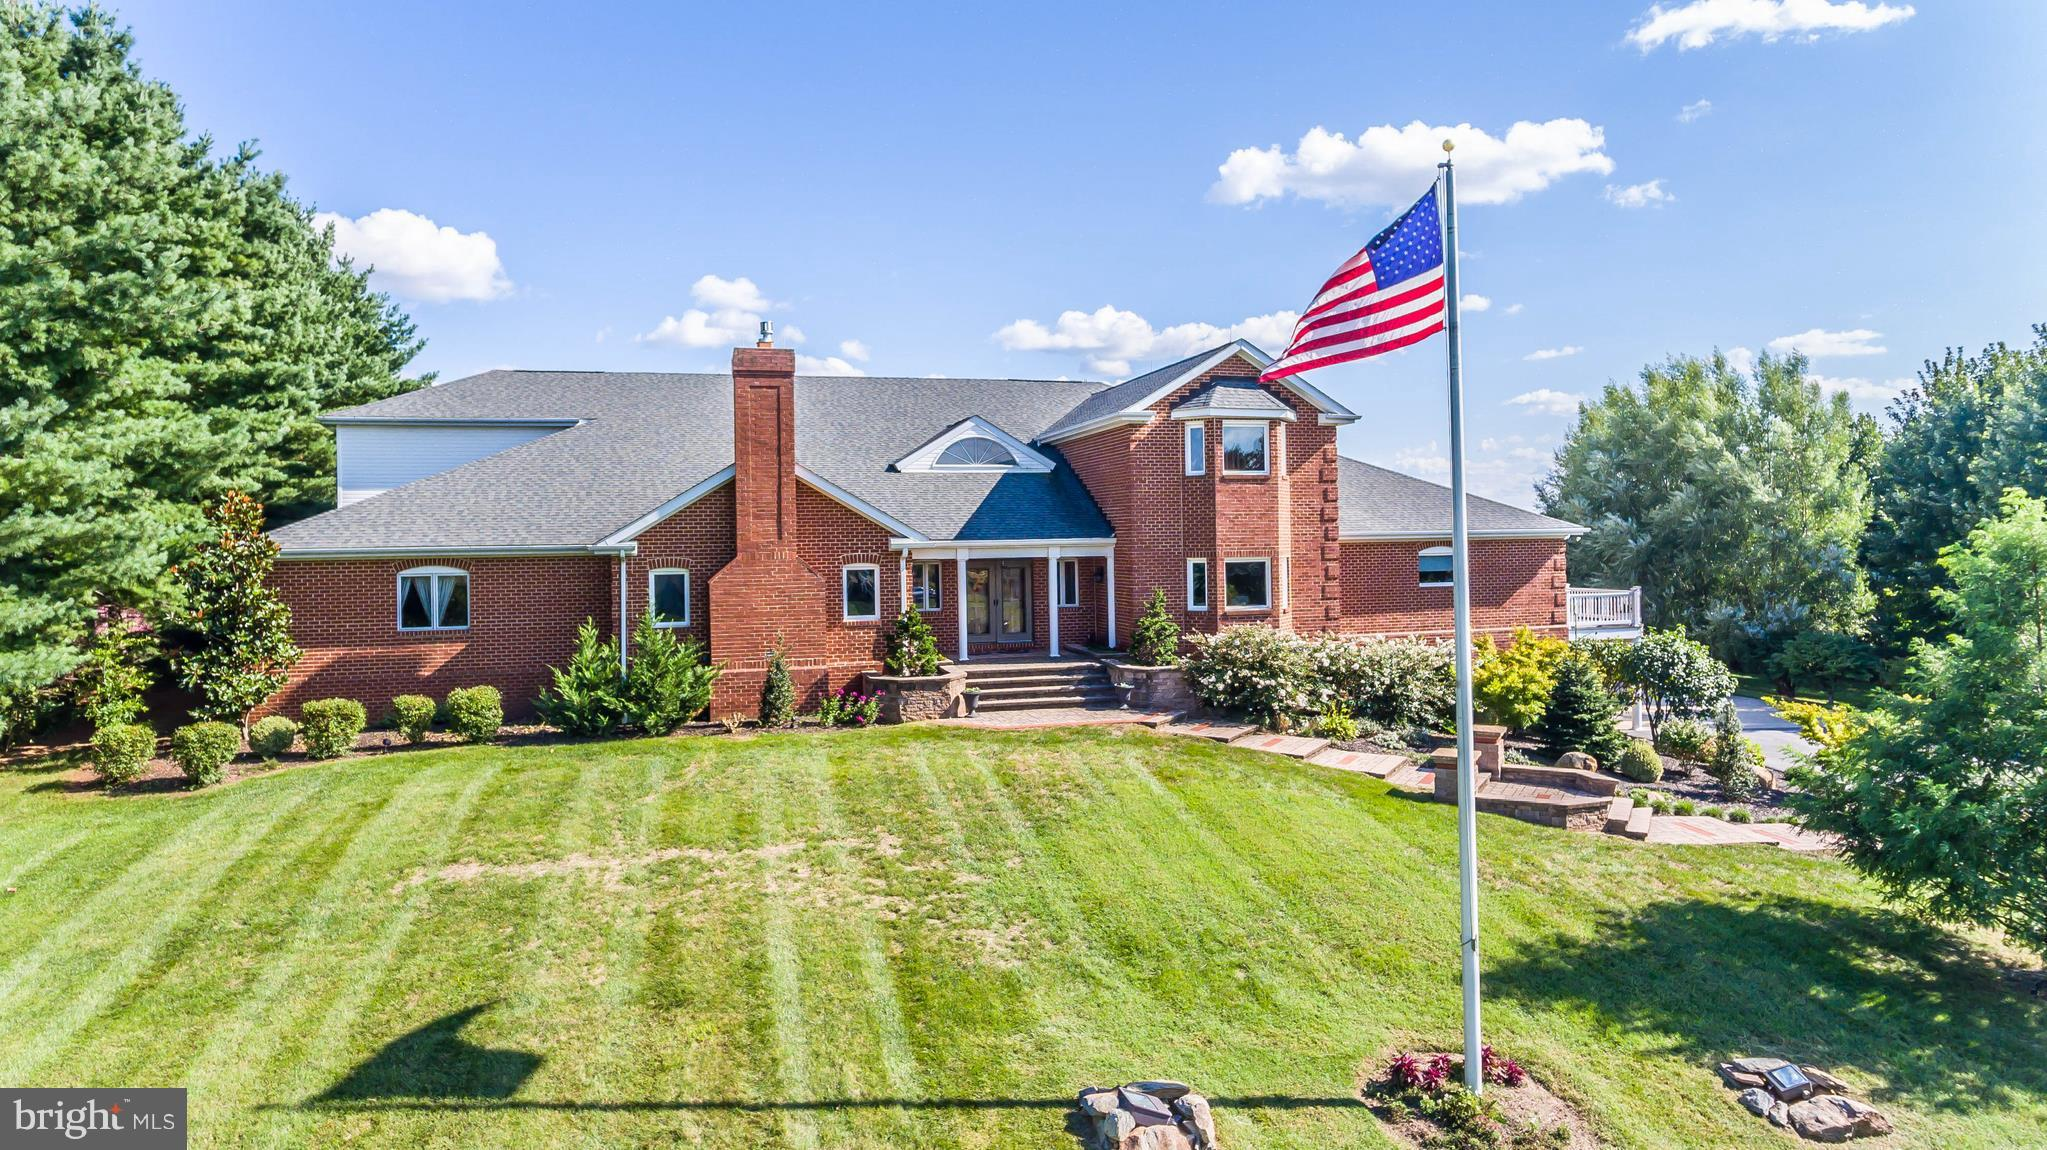 7193 MEADOWBROOKE DRIVE, FREDERICK, MD 21702